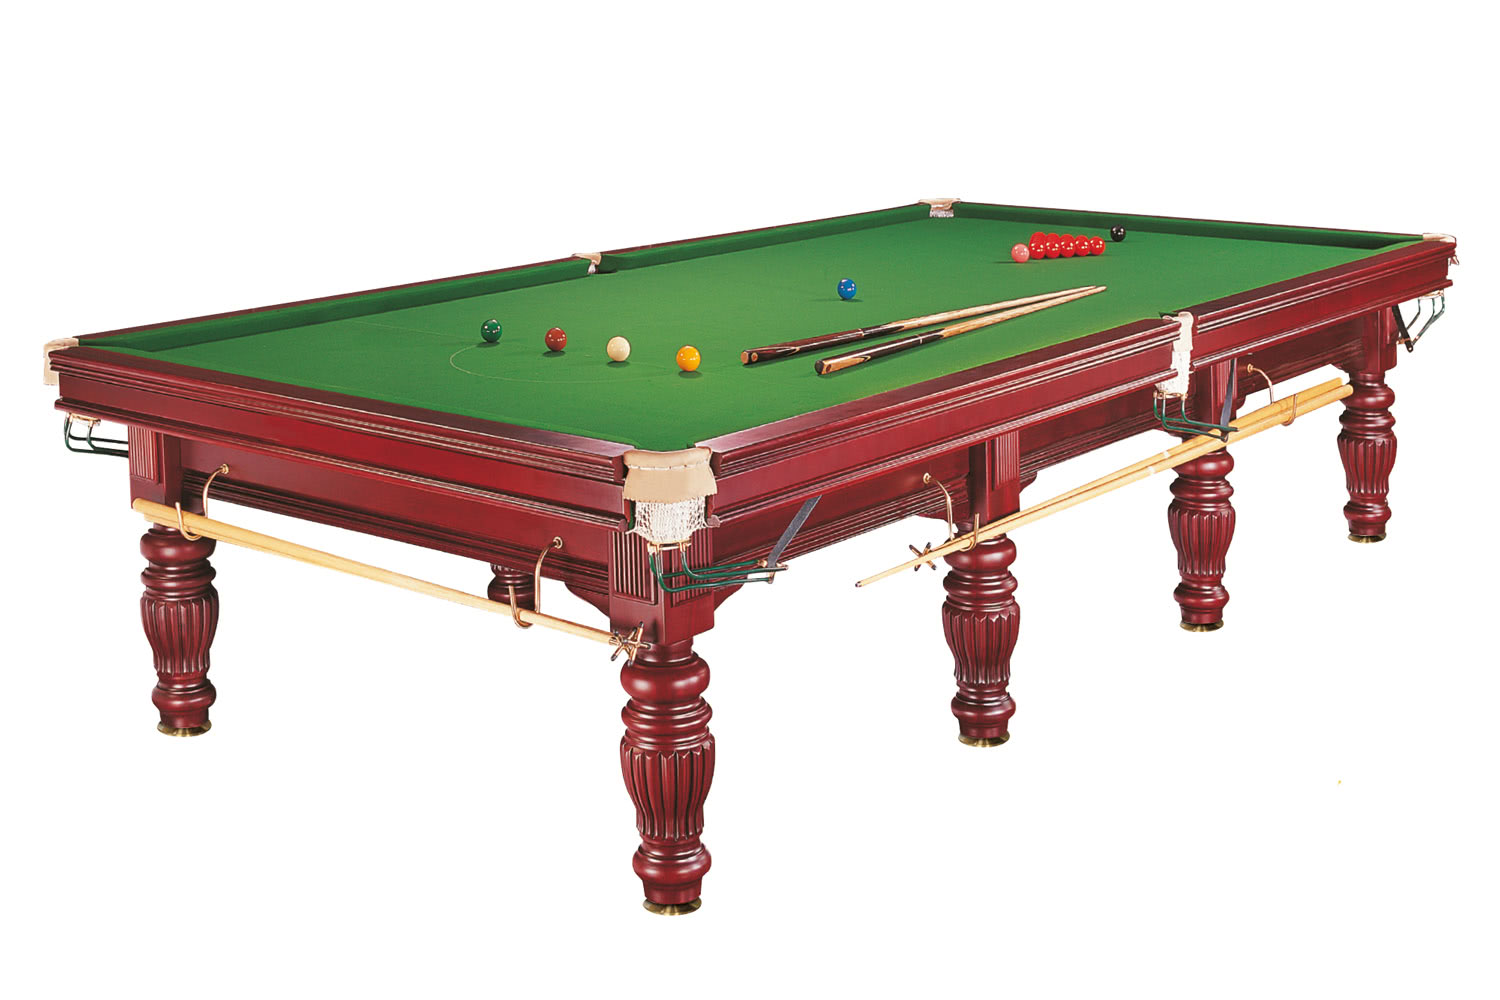 Dynamic Prince Snooker Table | Liberty Games